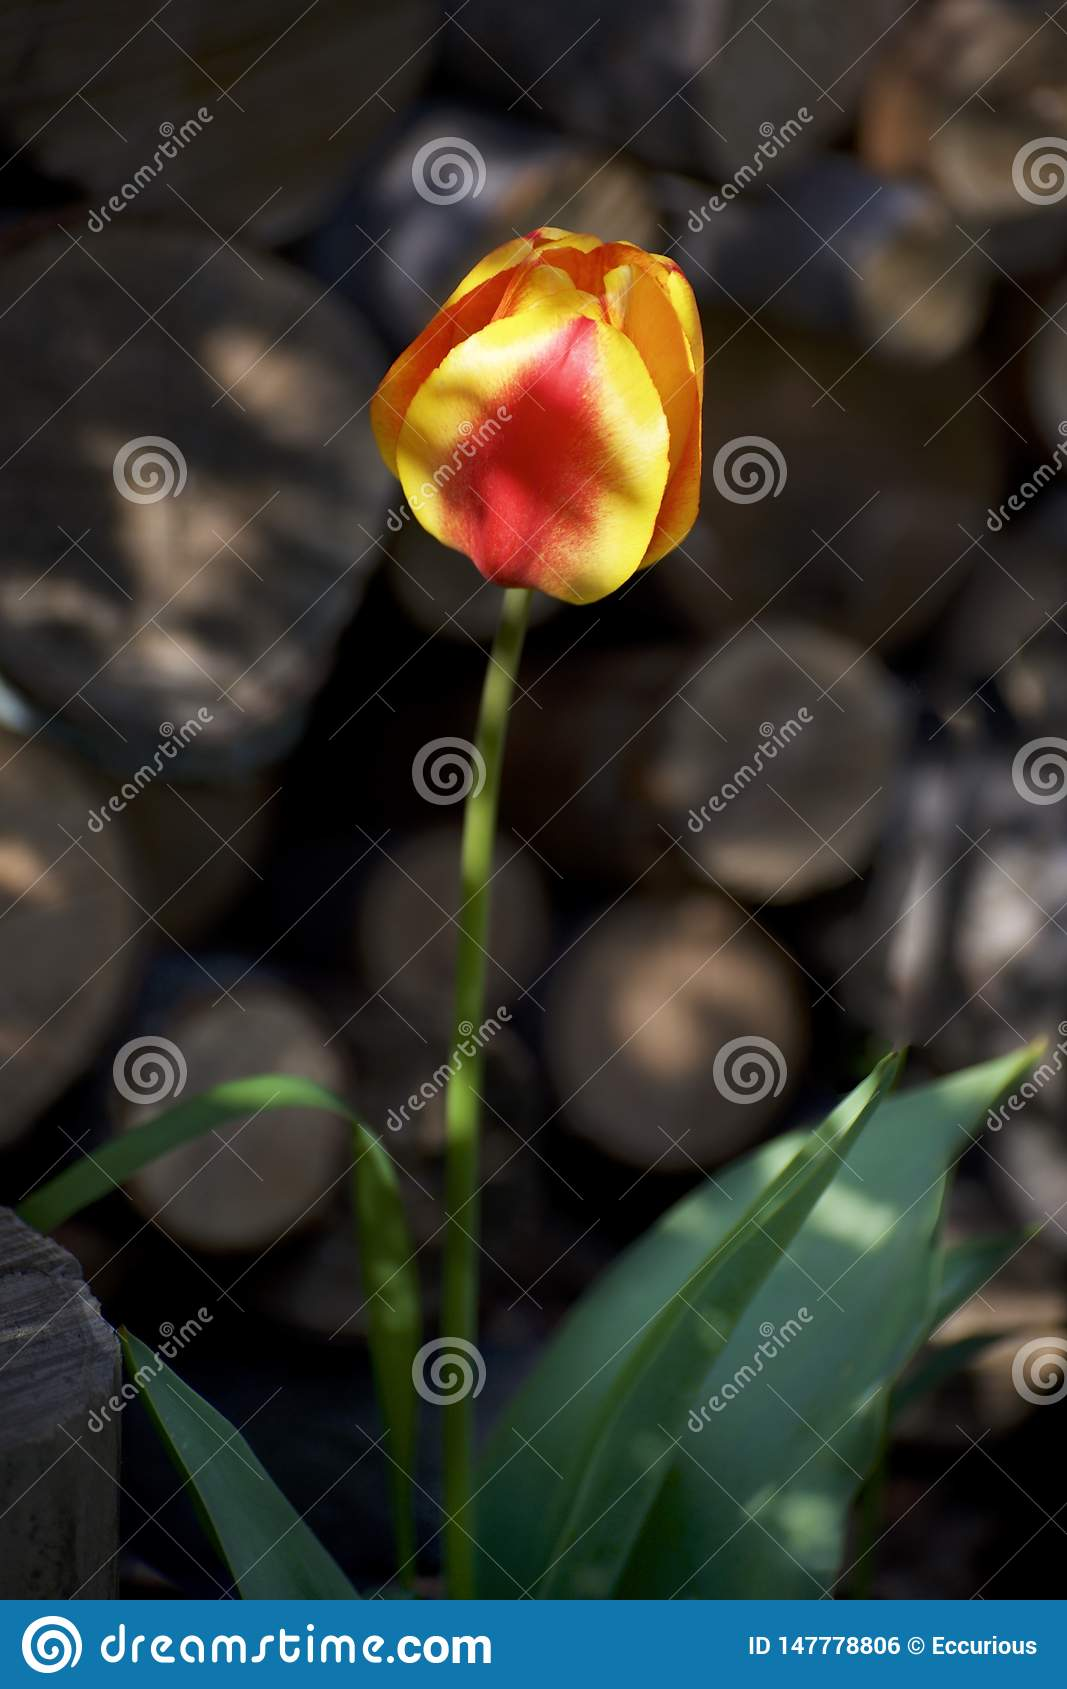 Closeup of a yellow and red tulip